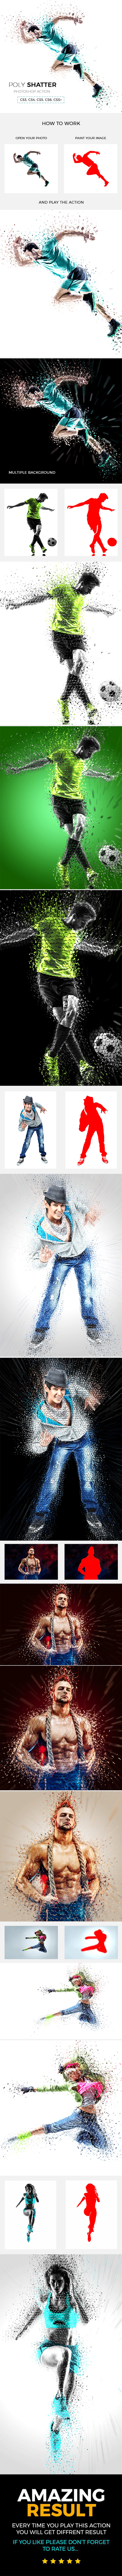 GraphicRiver Poly Shatter Photoshop Action 20990277